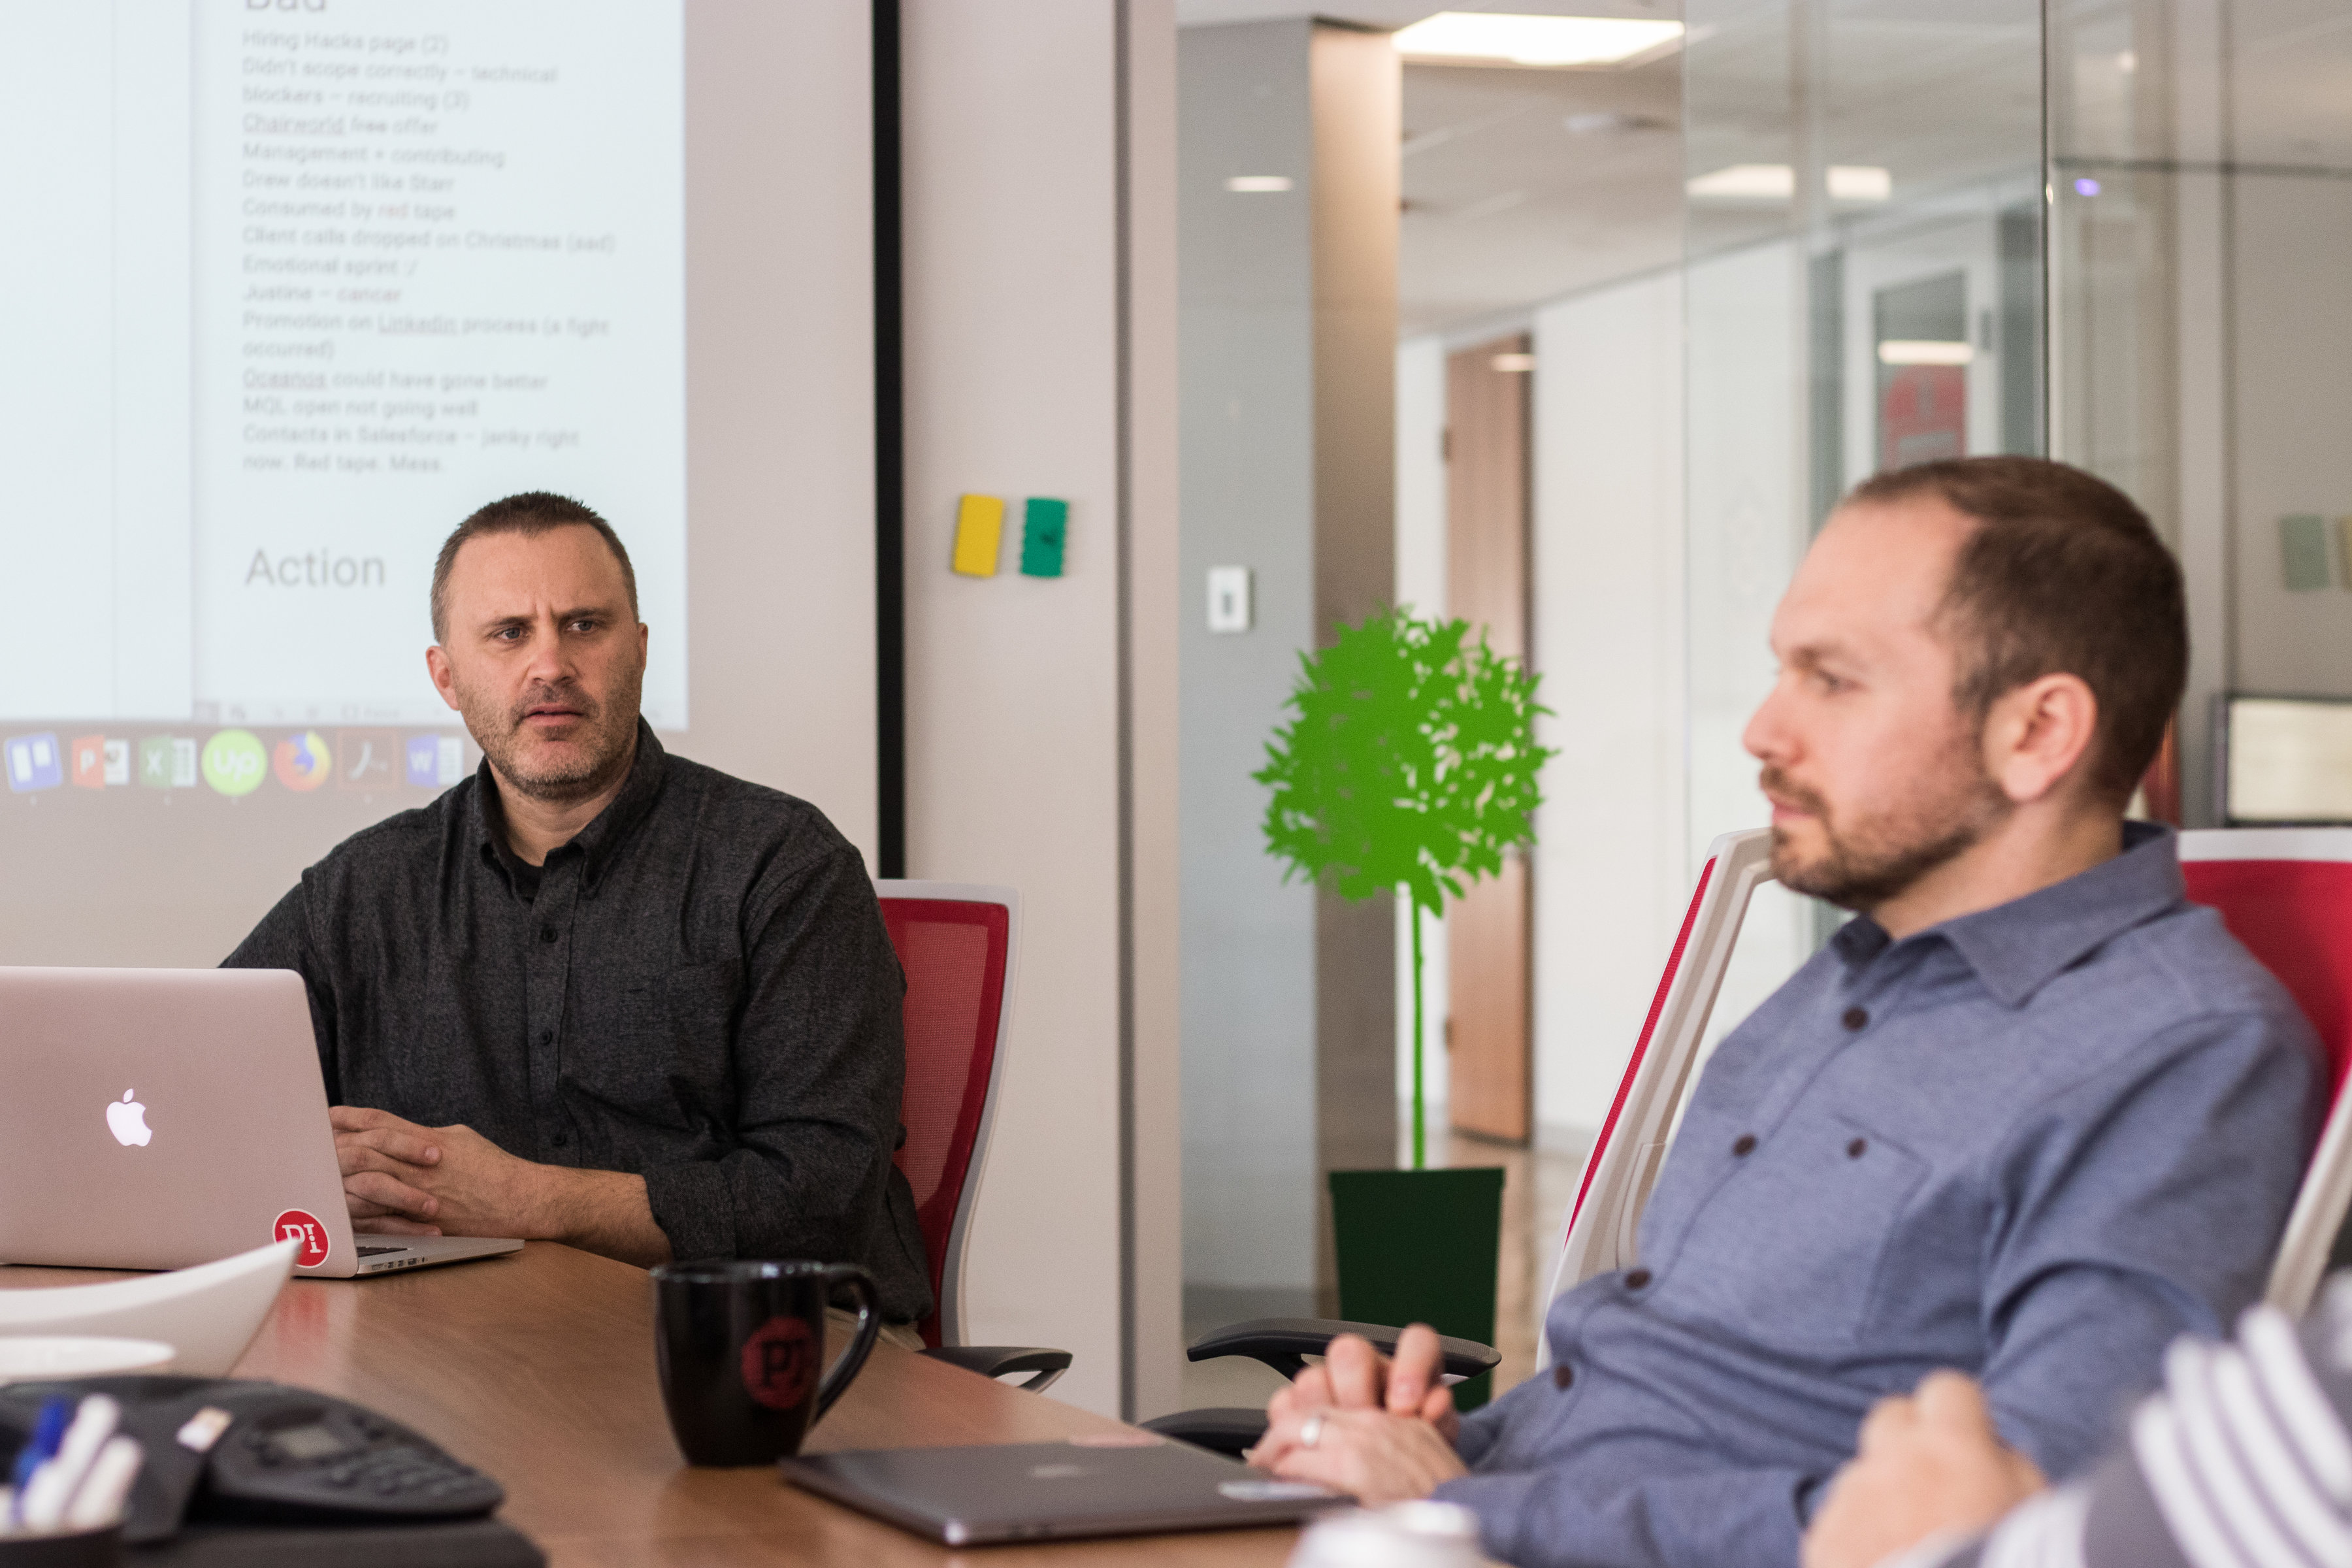 Two managers sit in a meeting room at an office